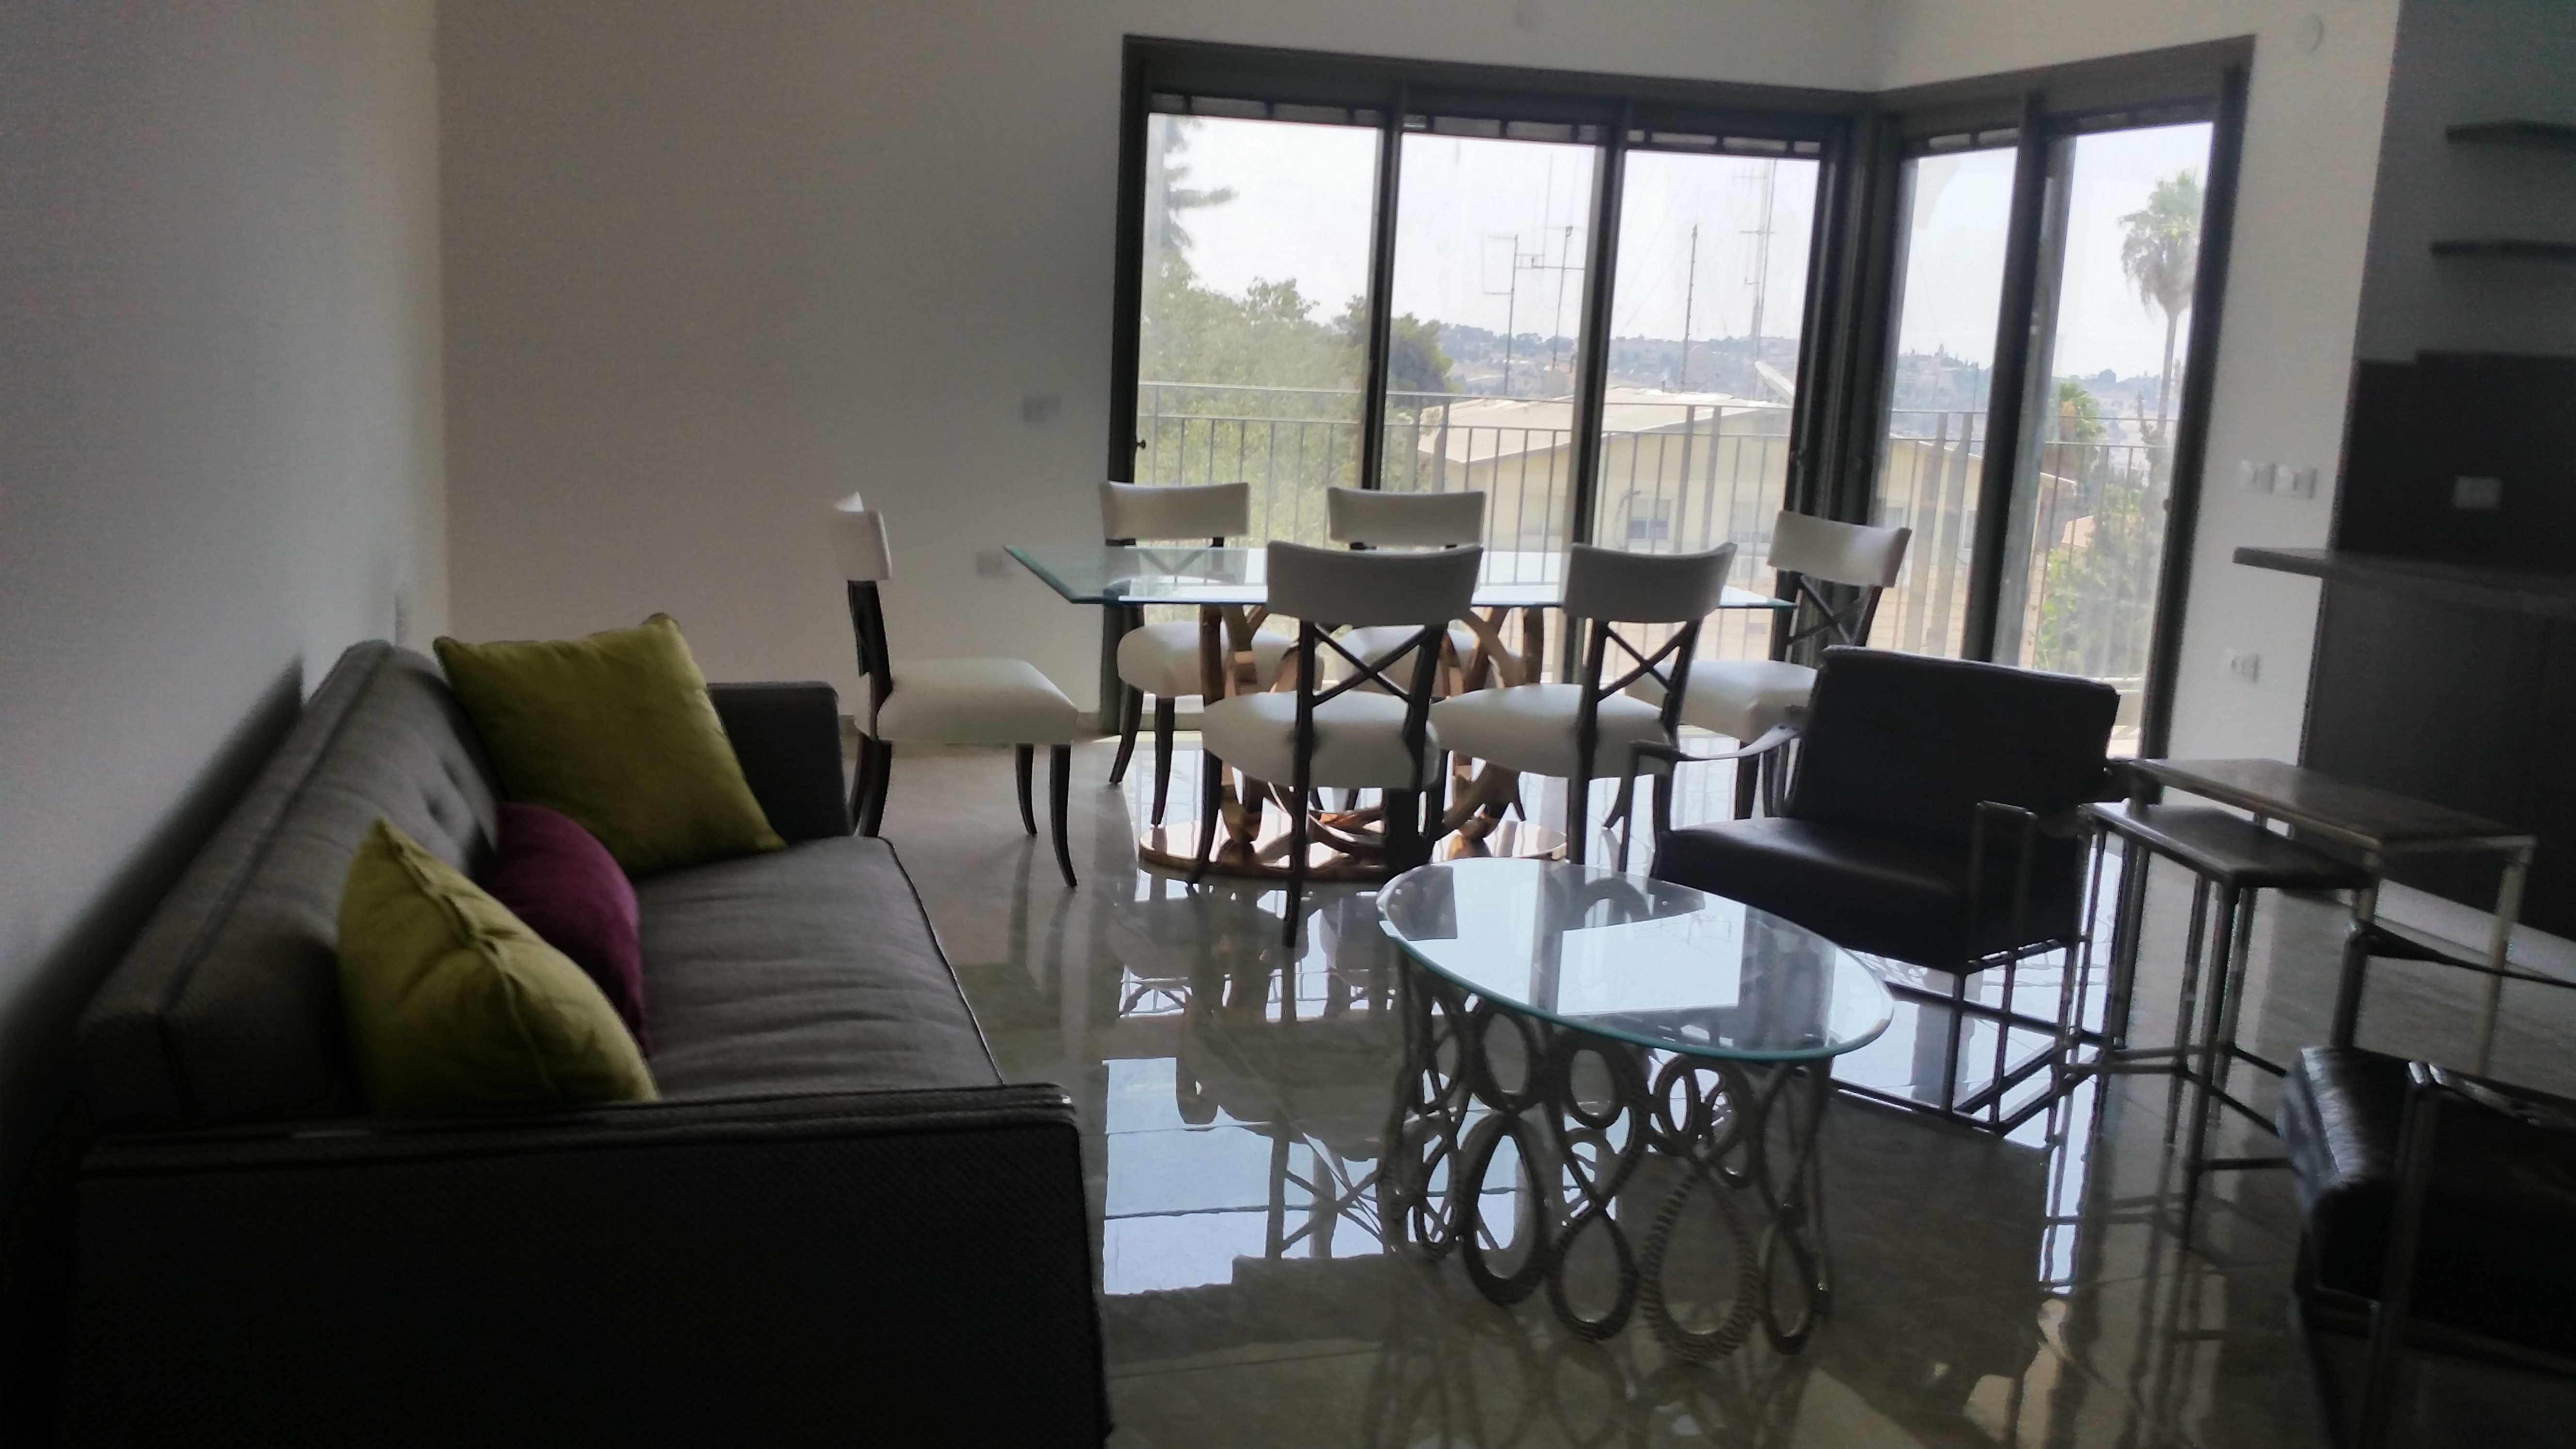 In Boutique HaNeviu0027im 2 Bedrooms,1.5 Baths 3rd Floor Apartment For Sale